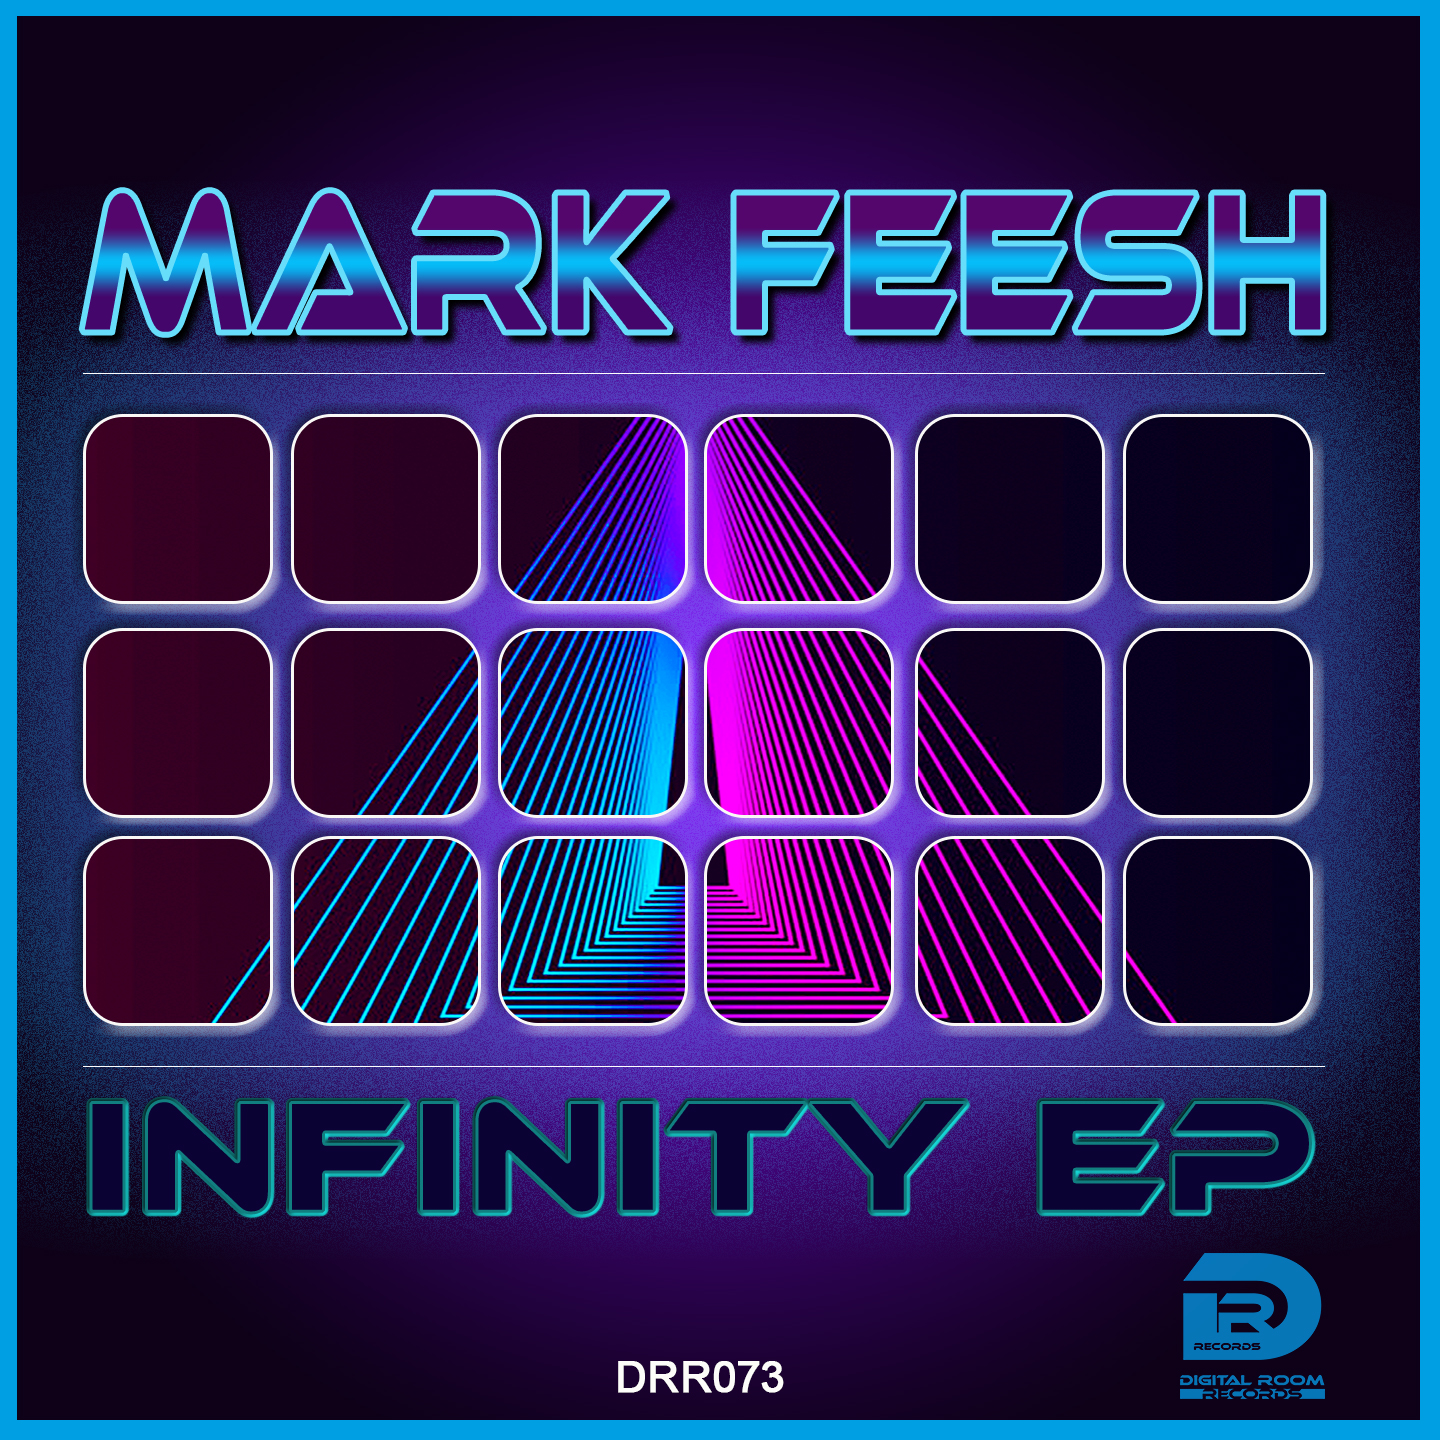 Mark Feesh - Infinity EP 1440x1440